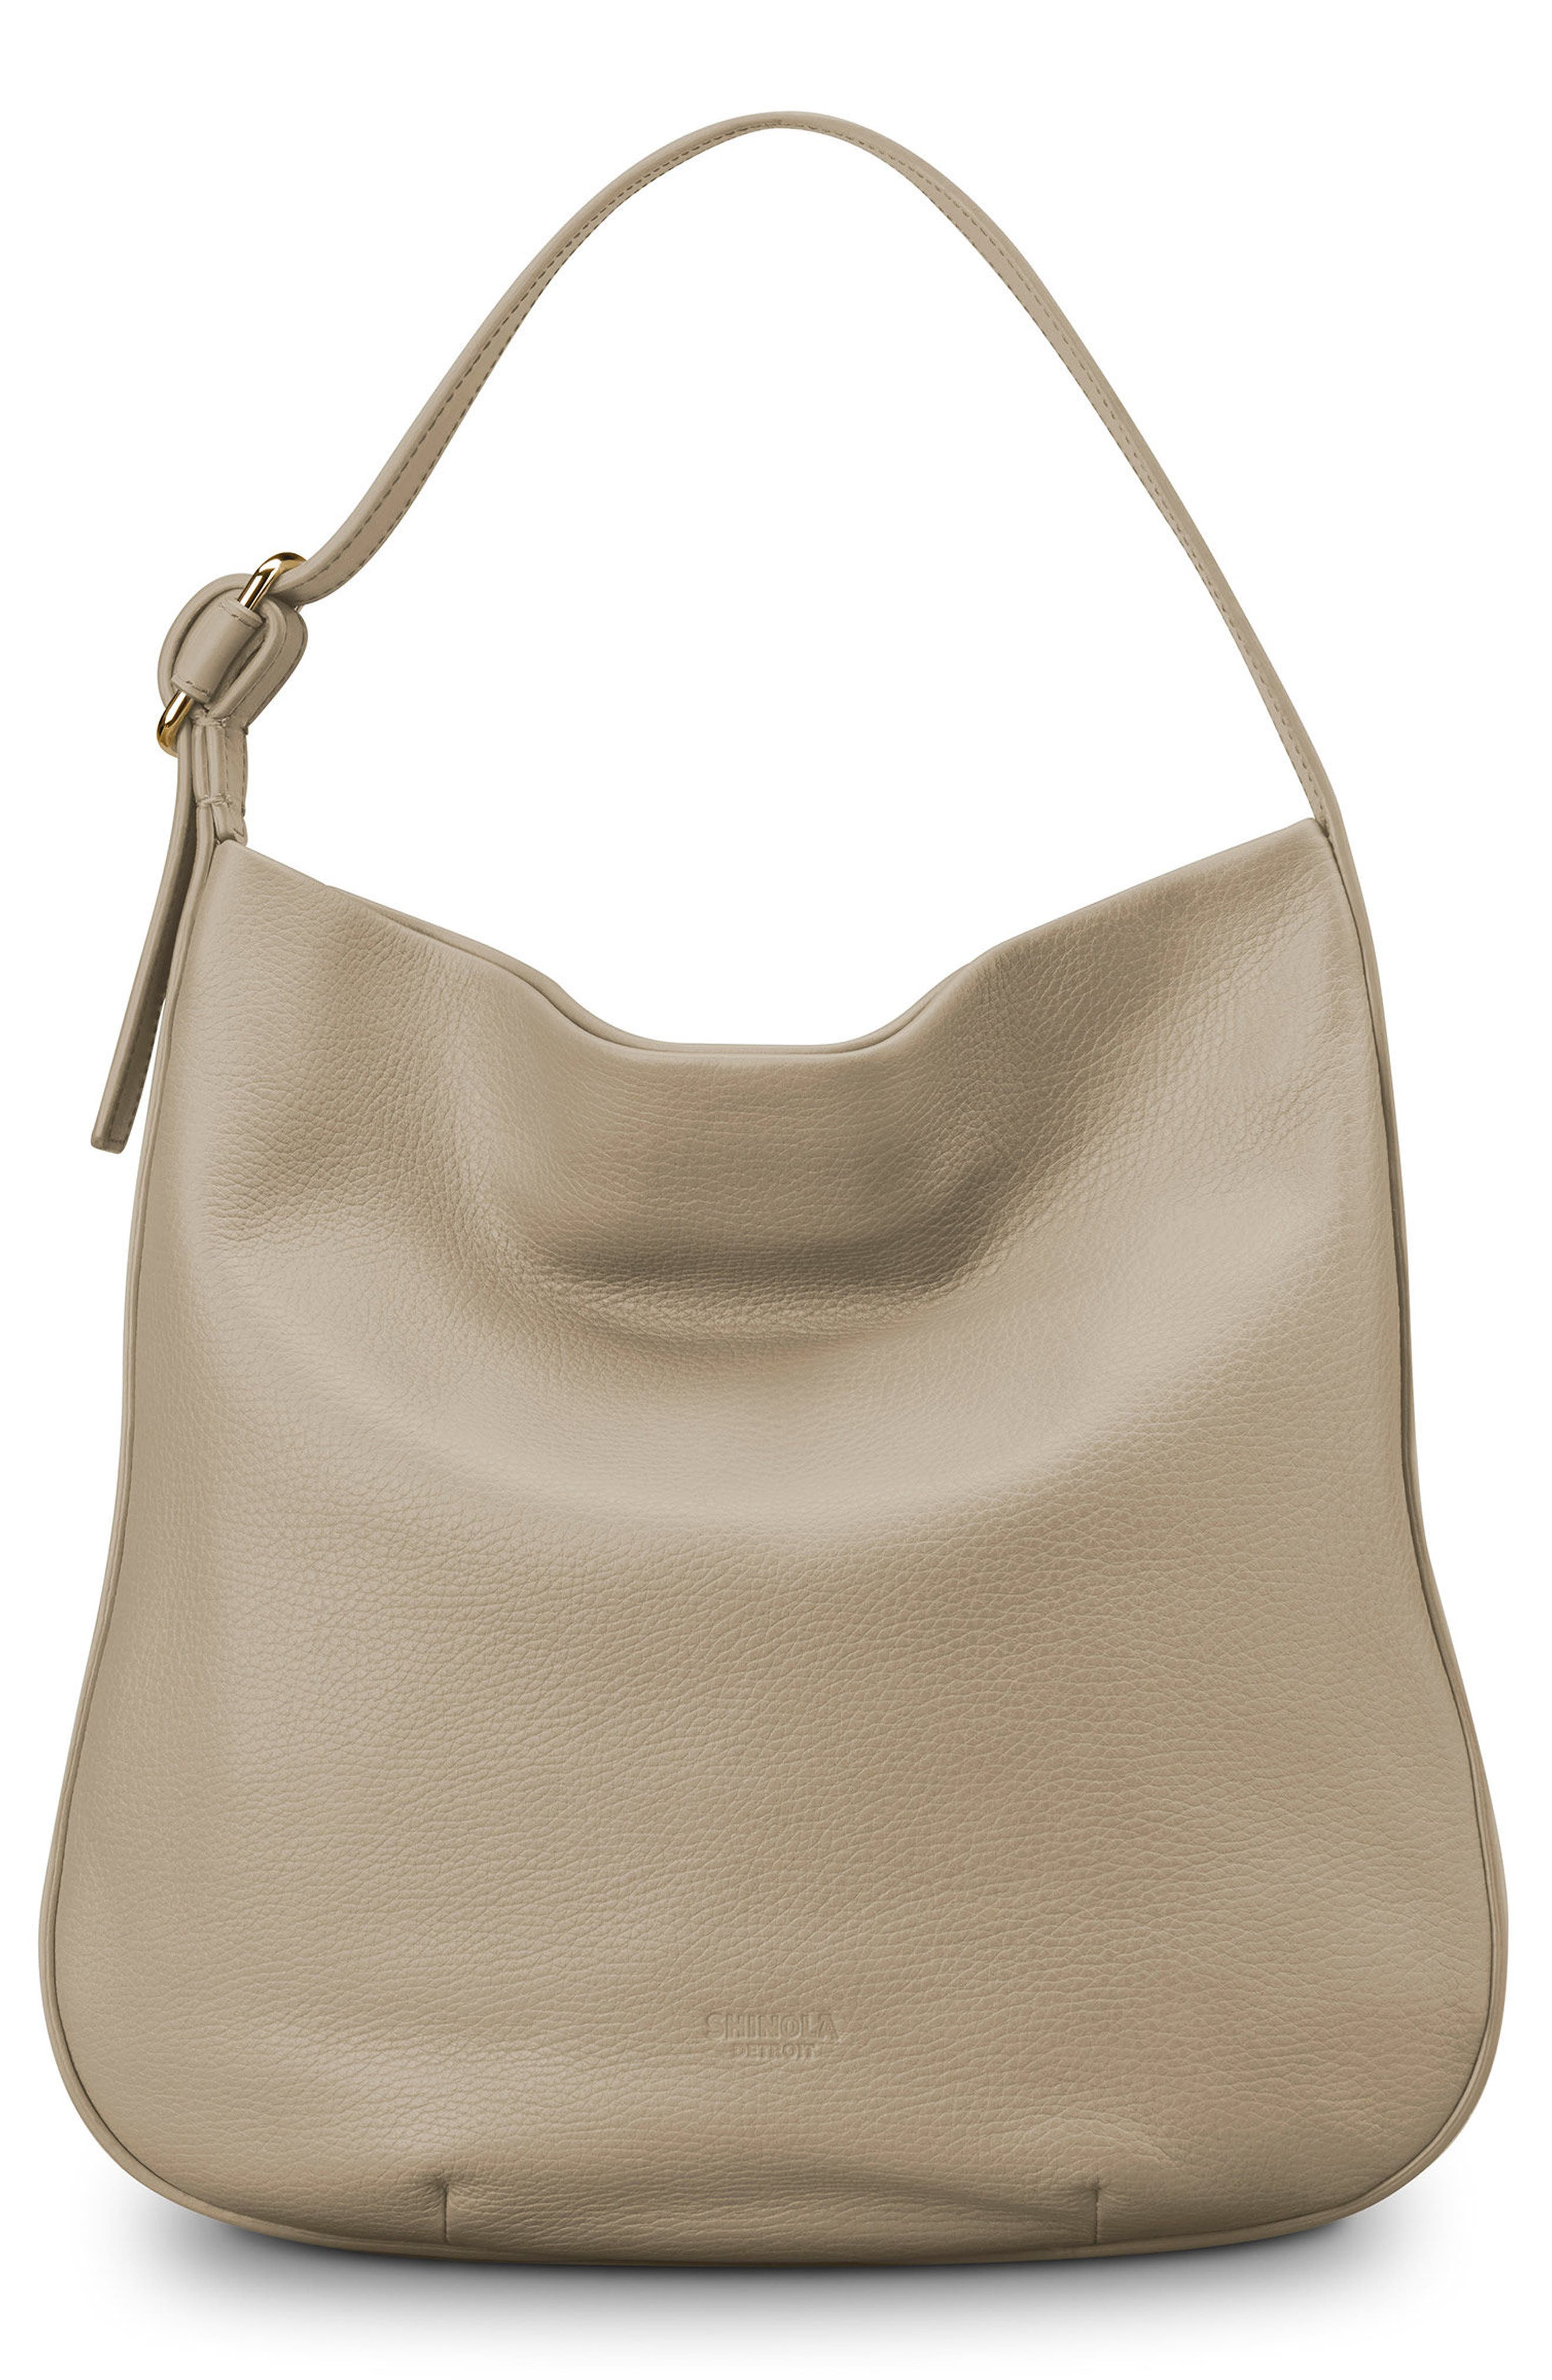 Birdy Grained Leather Hobo Bag,                             Main thumbnail 1, color,                             STONE